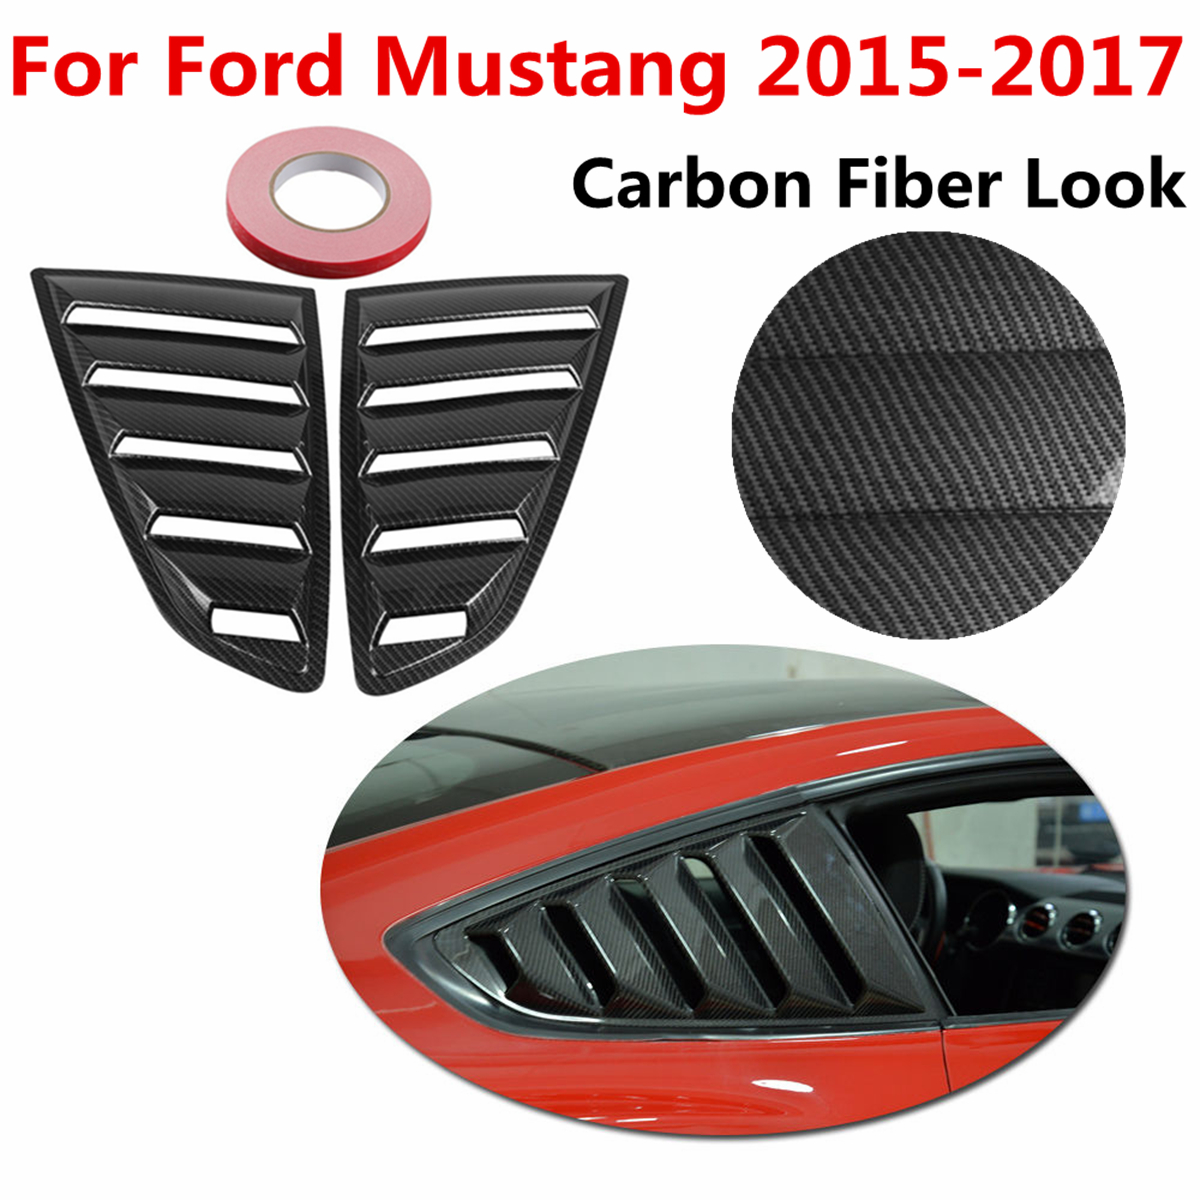 1Pair Carbon Fiber Look Style 1/4 Quarter Side Window Scoop Five Slot Open Louvers Cover Vent ABS Plastic for Mustang 2015 2017